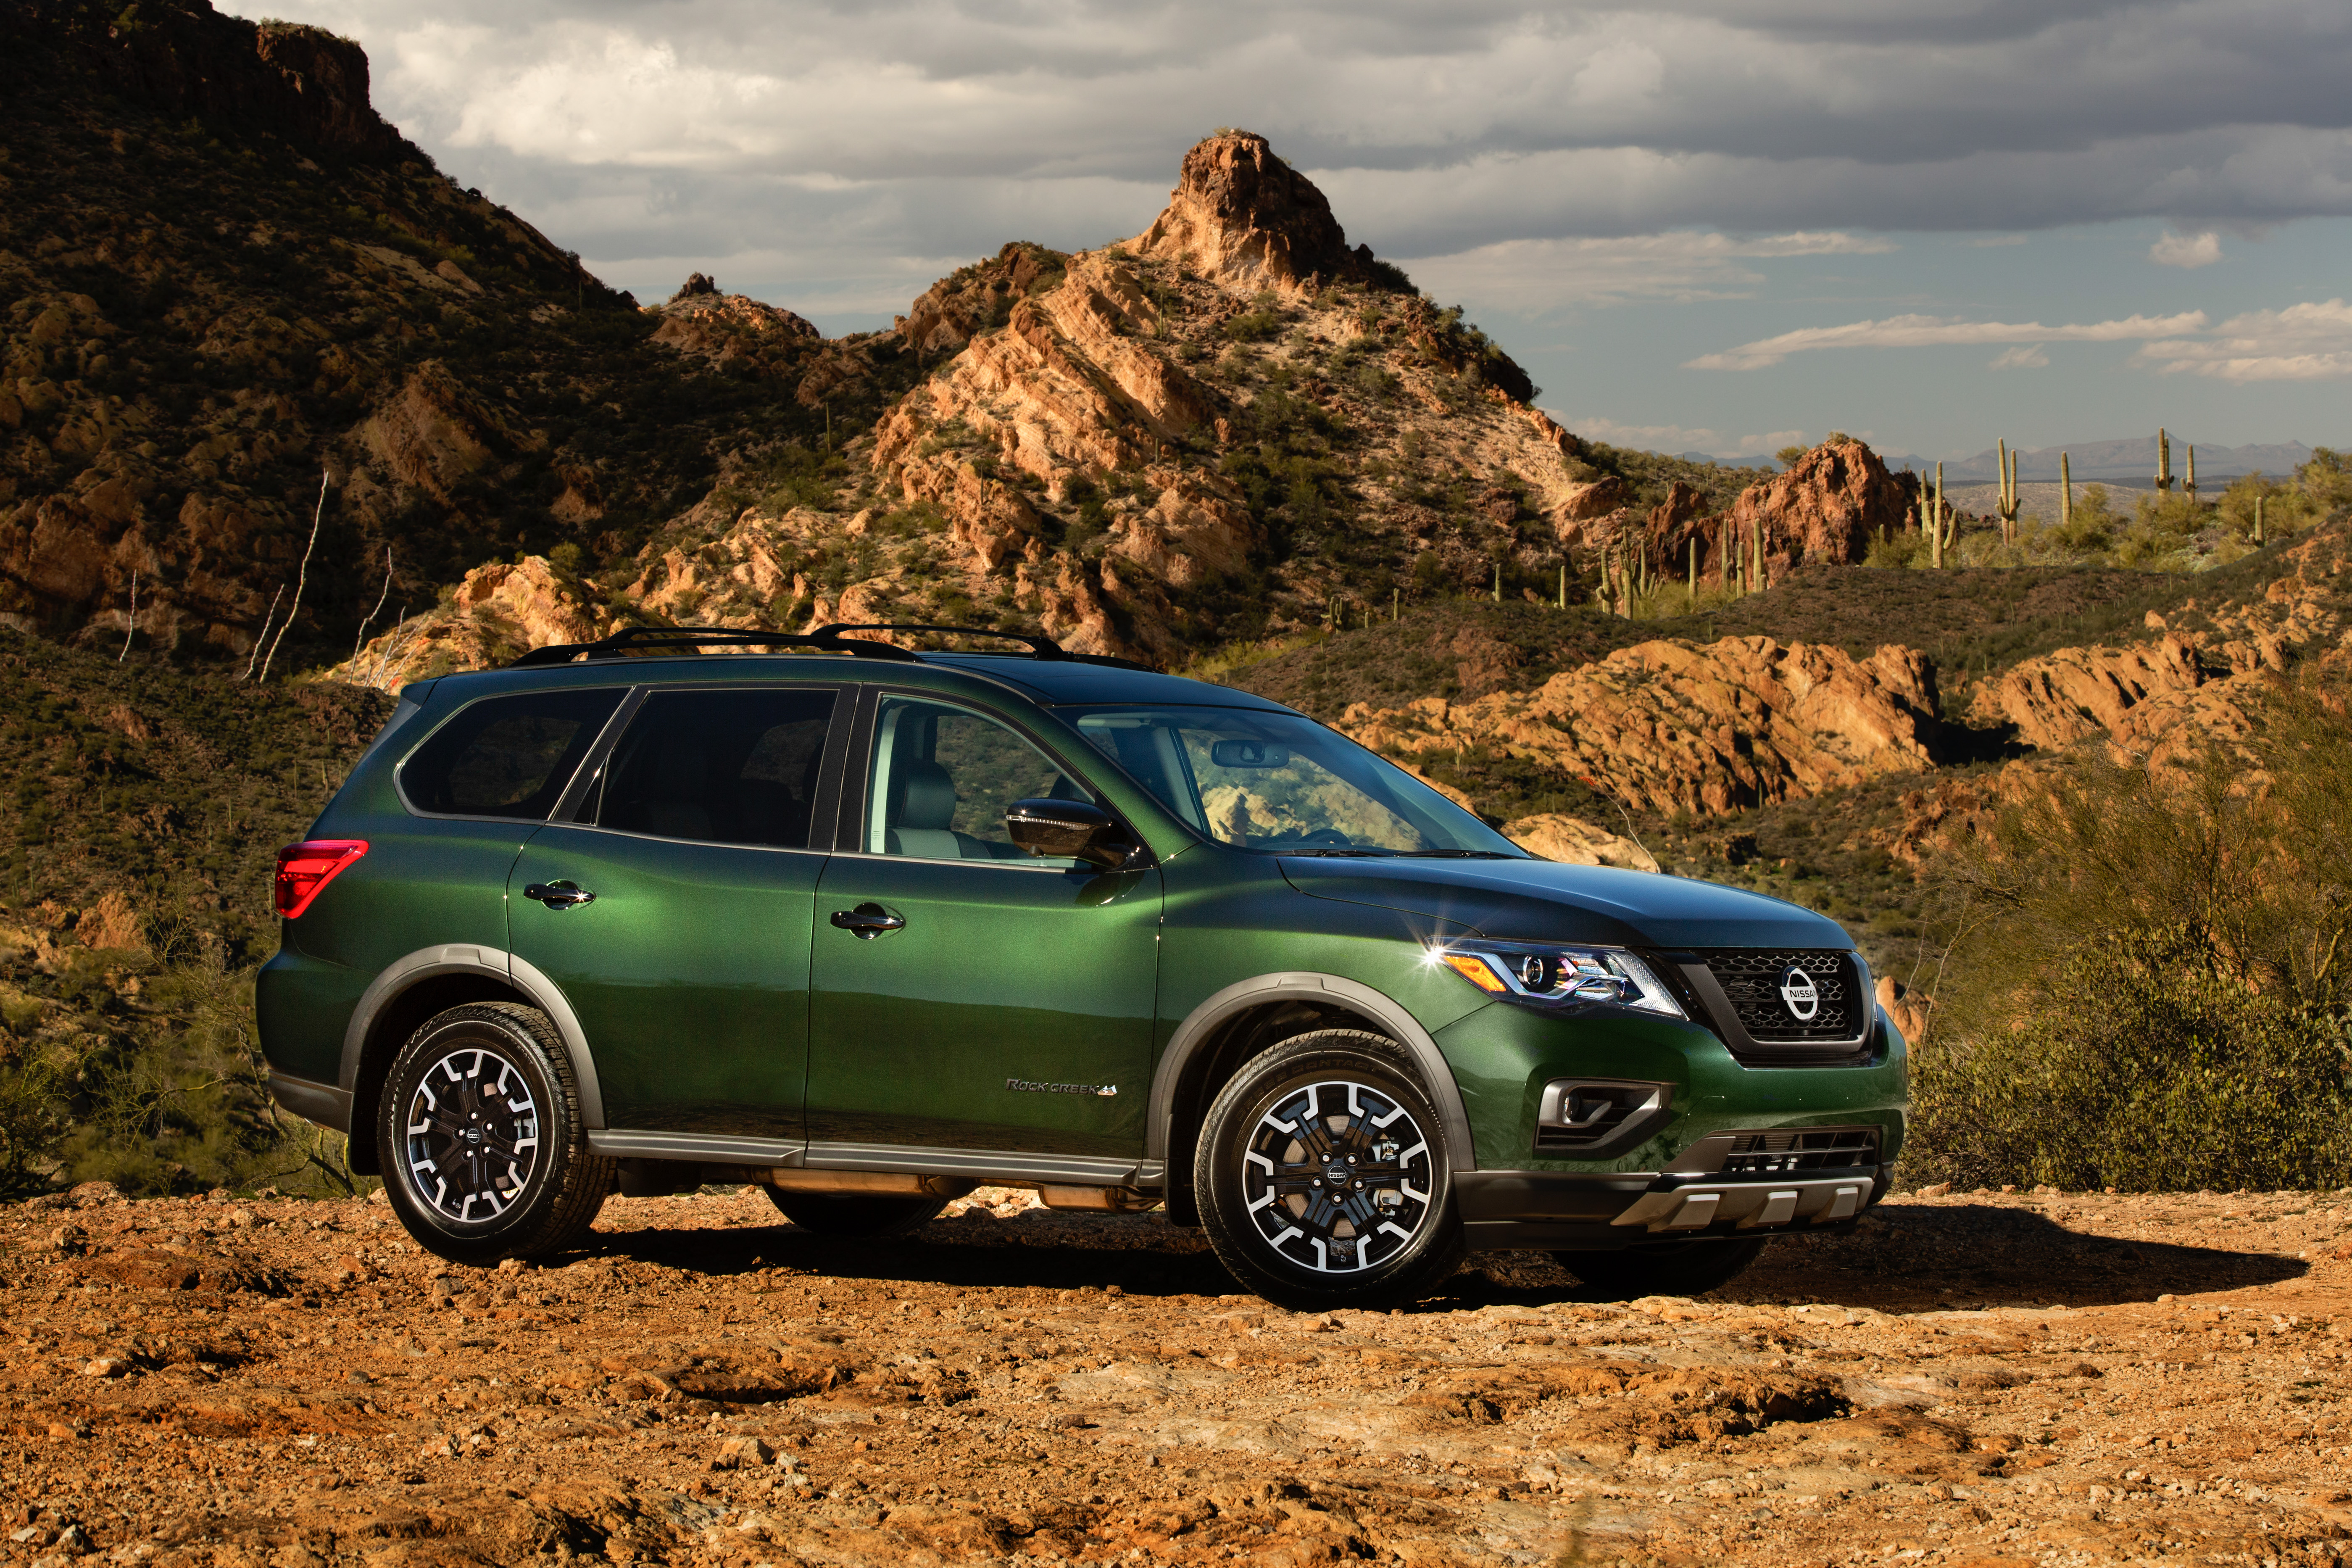 Nissan Pathfinder Rock Creek Edition